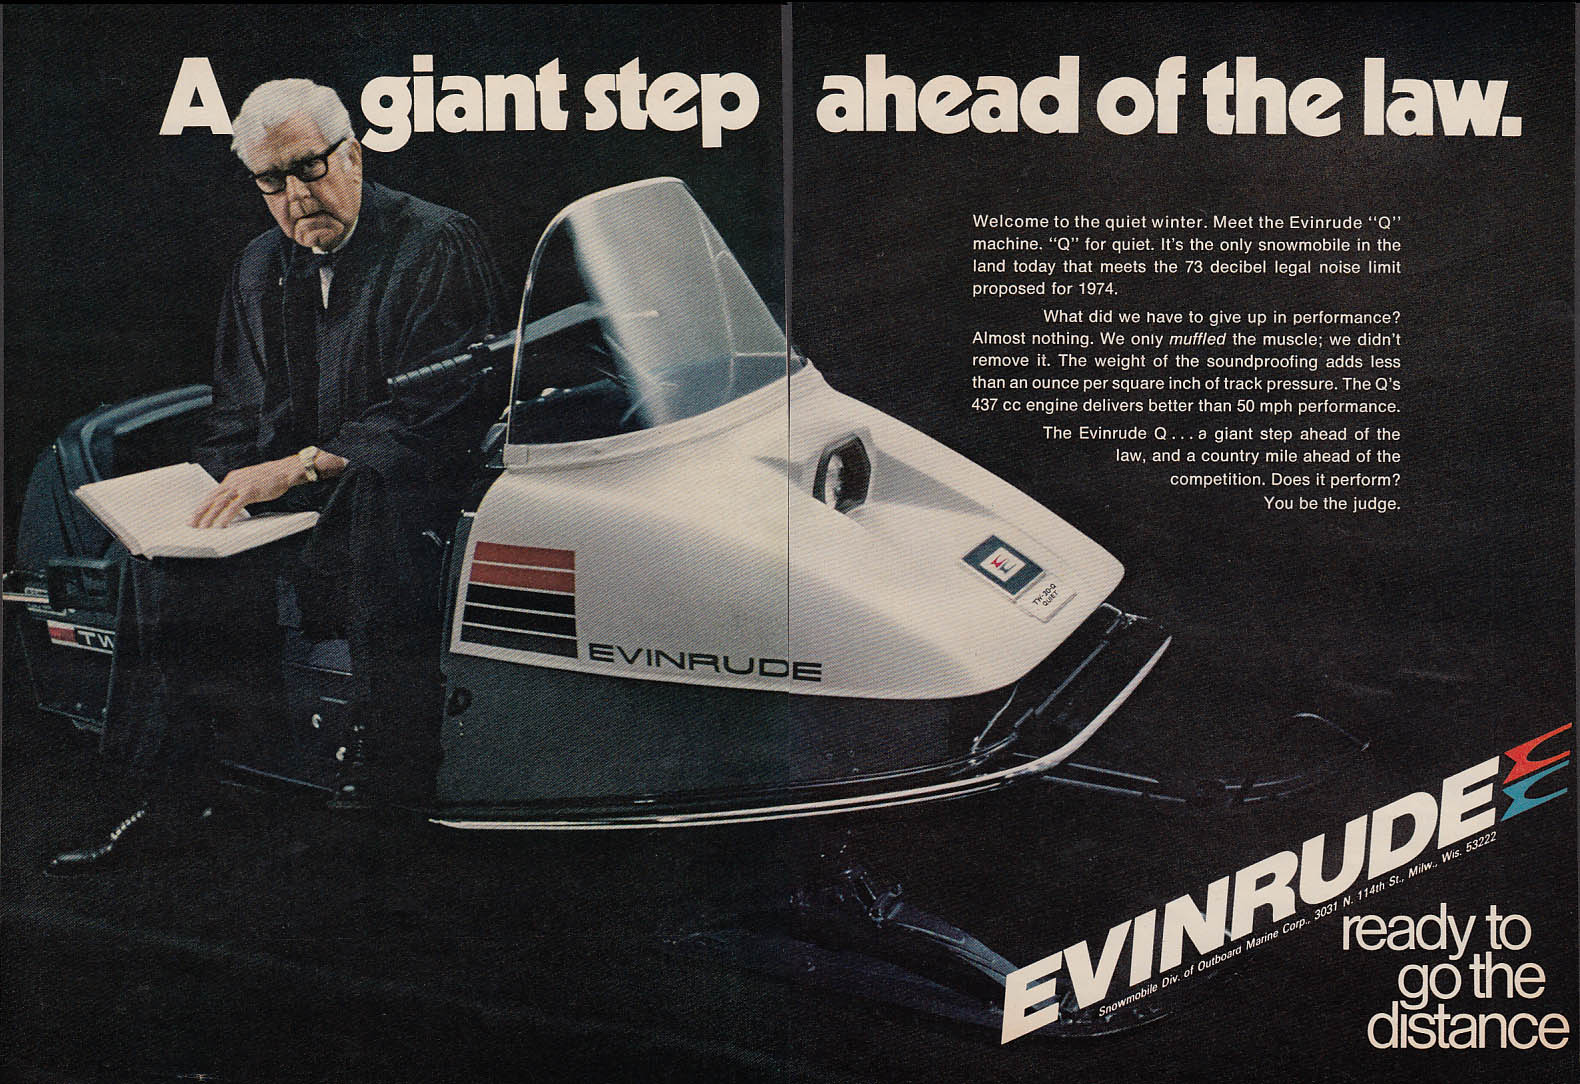 A giant step ahead of the law Evinrude WT-30-Quiet snowmobile magazine ad 1973